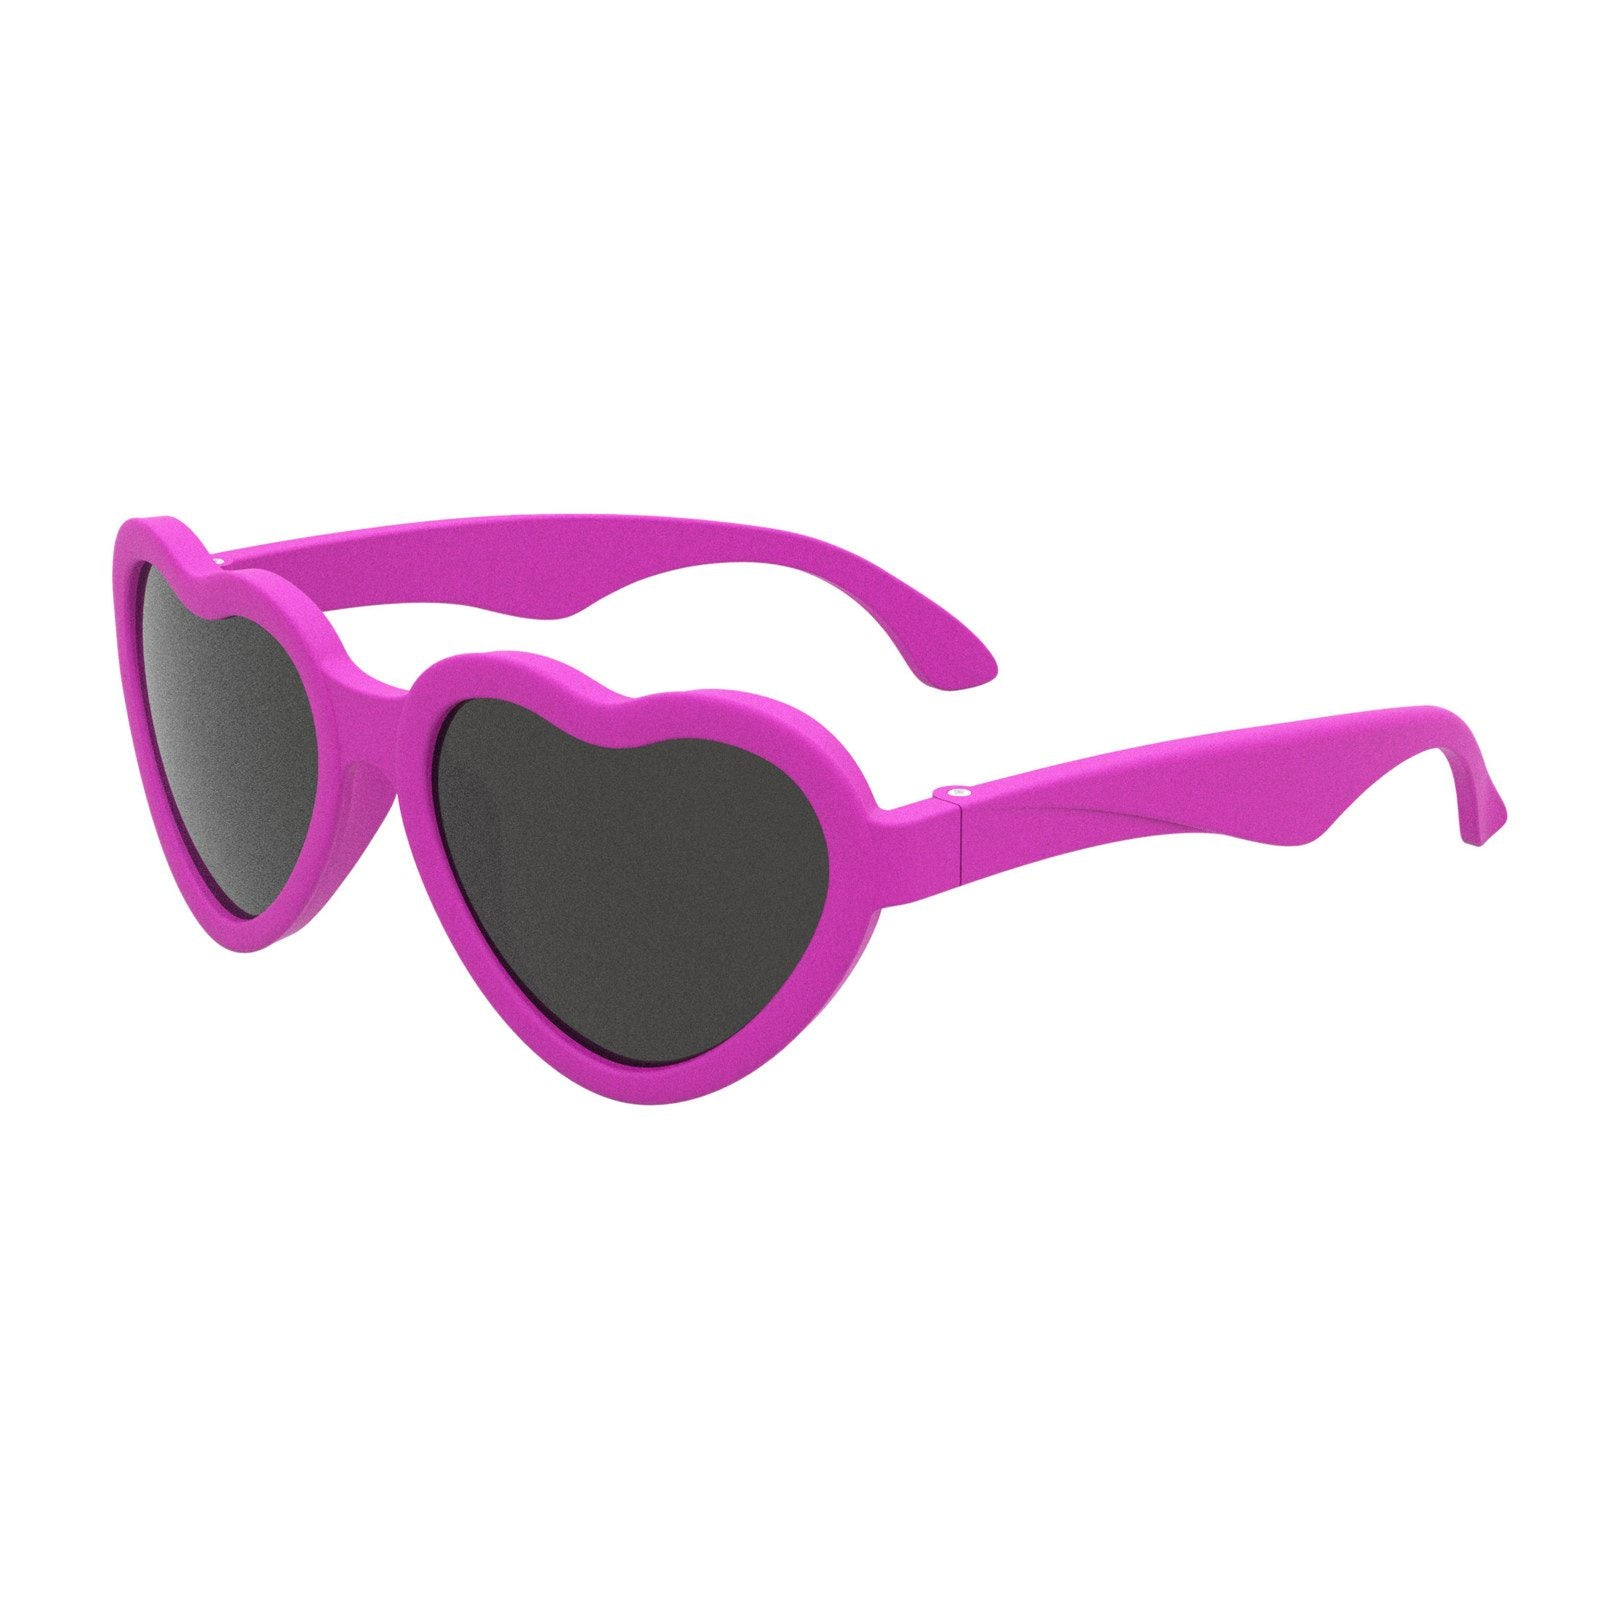 Babiators Heartbreaker Popstar Pink Heart Shaped Sunglasses